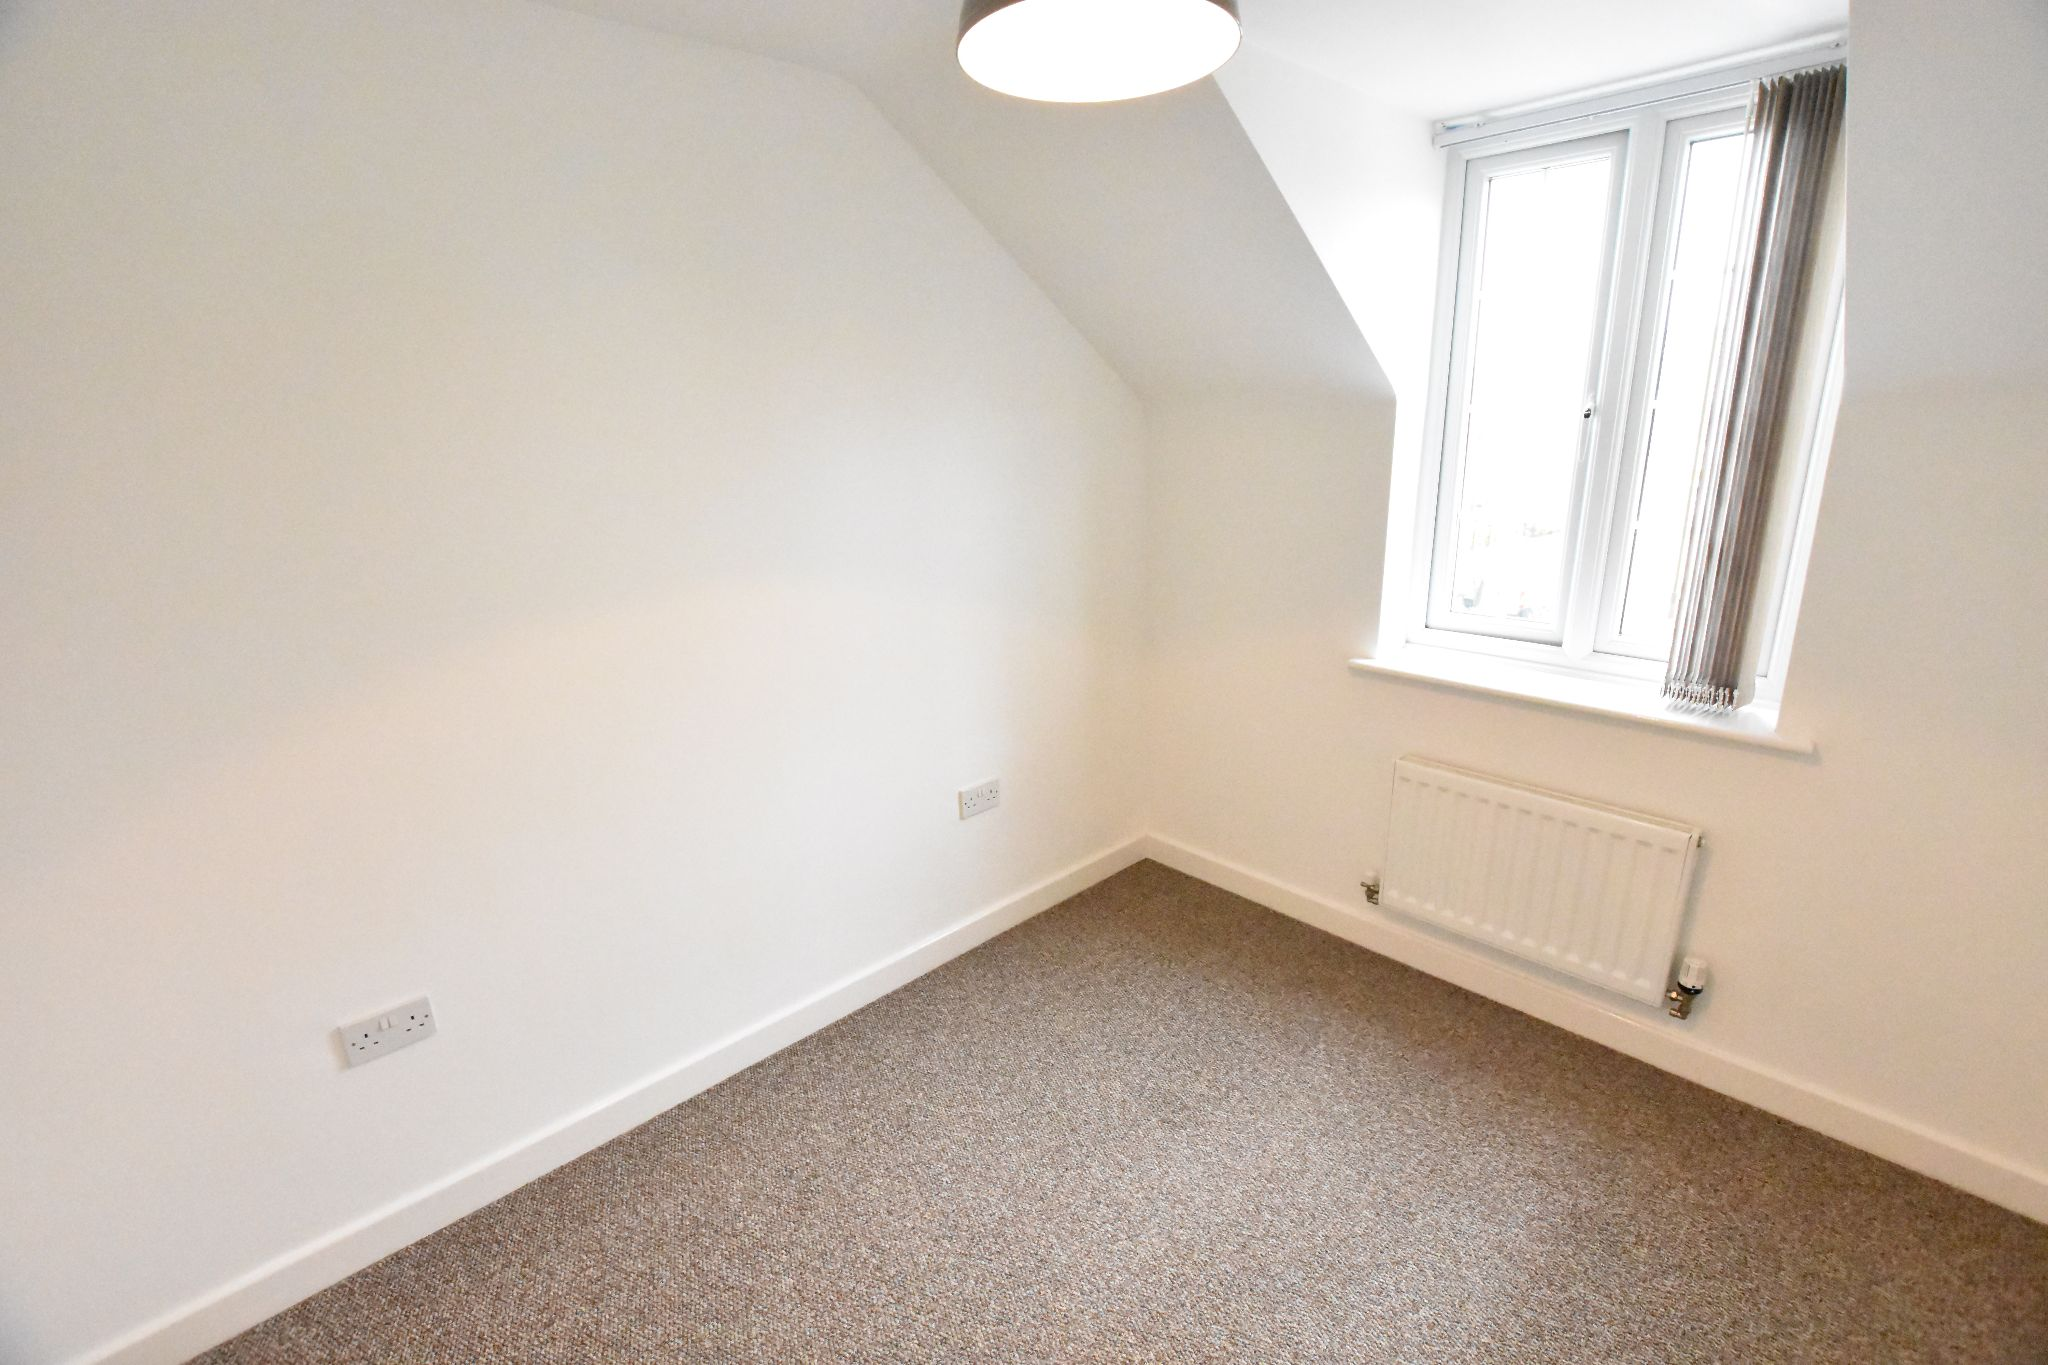 2 bedroom apartment flat/apartment To Let in Preston - Bedroom 2